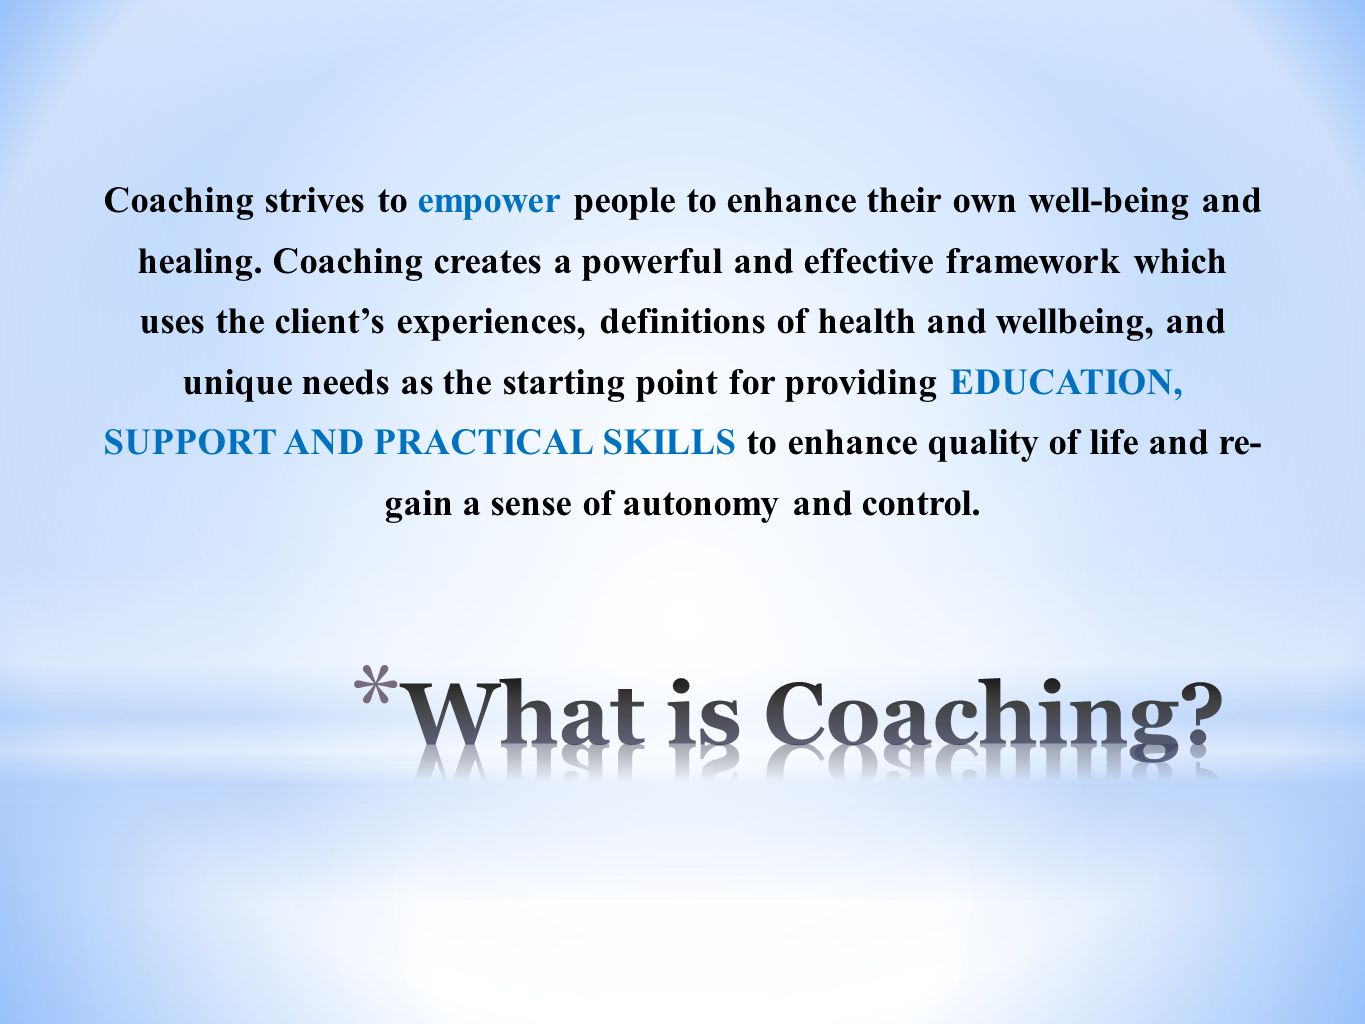 Coaching strives to empower people to enhance their own well-being and healing.